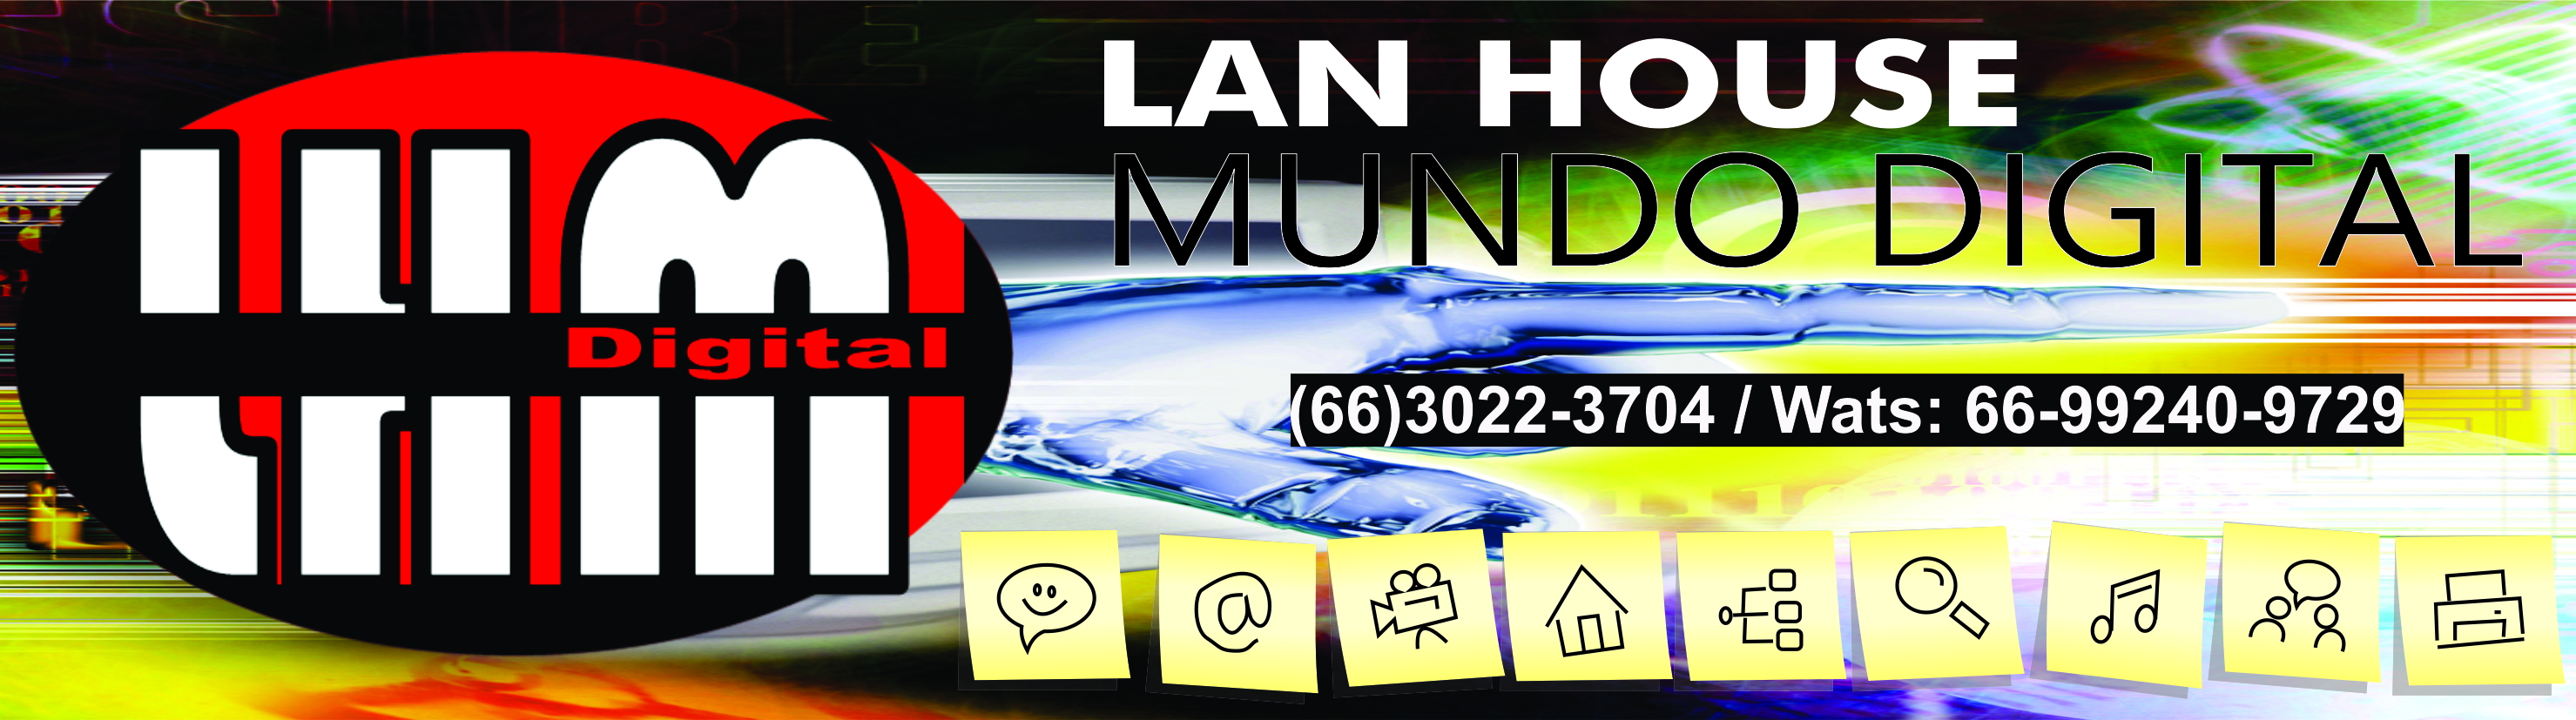 Lan House Mundo Digital